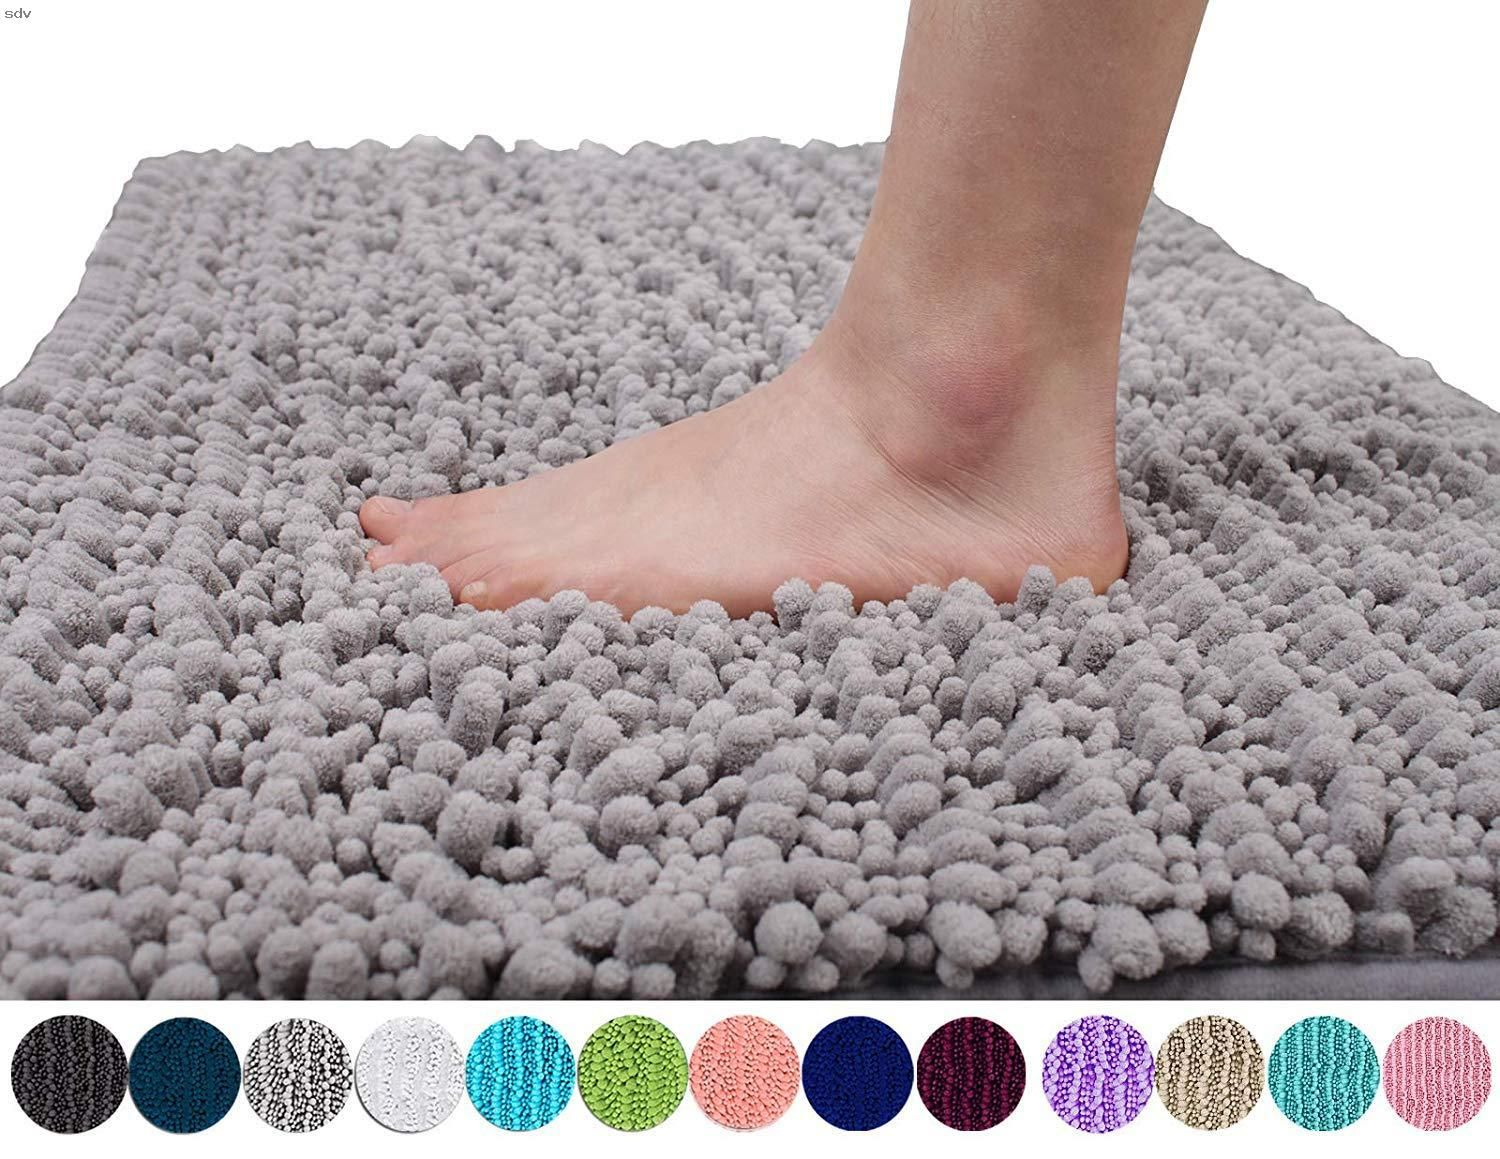 Yimobra Original Luxury Chenille Bath Mat Soft Shaggy And Comfortable Large Size Super Absorbent And Thick Non Slip Machine Washable Perfect For Bathroom [ 1159 x 1500 Pixel ]